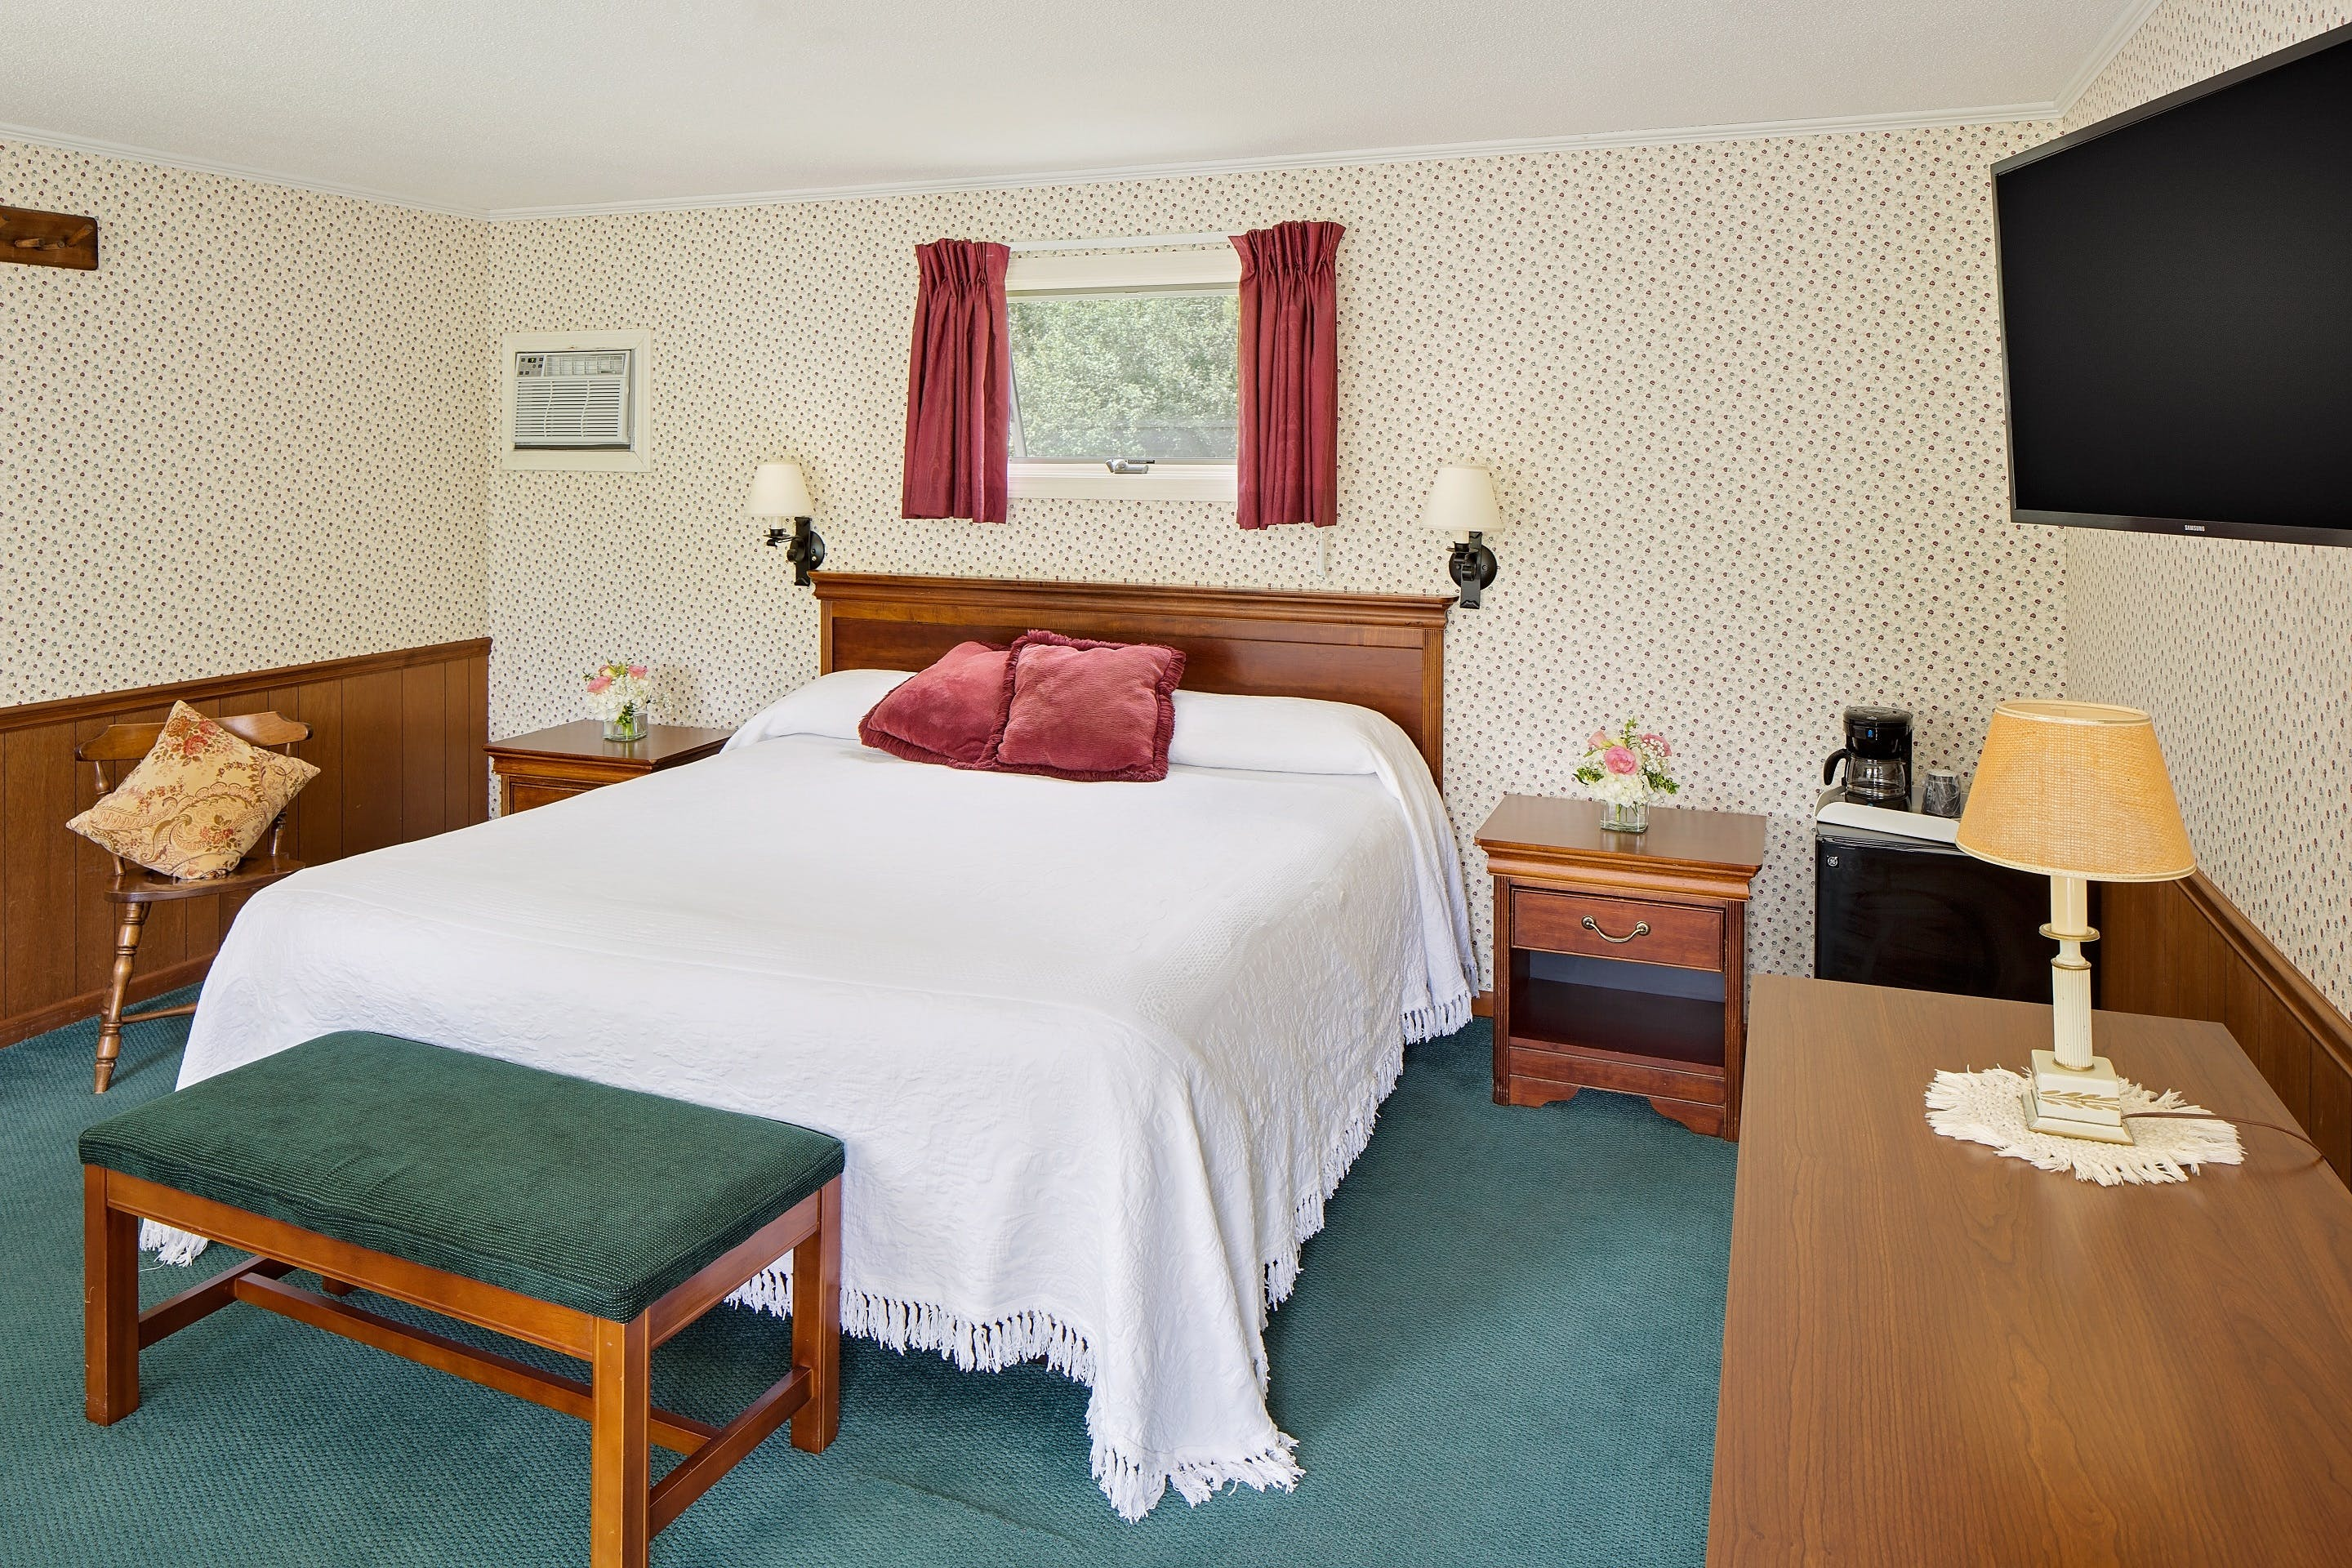 Image of our Snow King Suite or Equinox King room with 1 single bed.